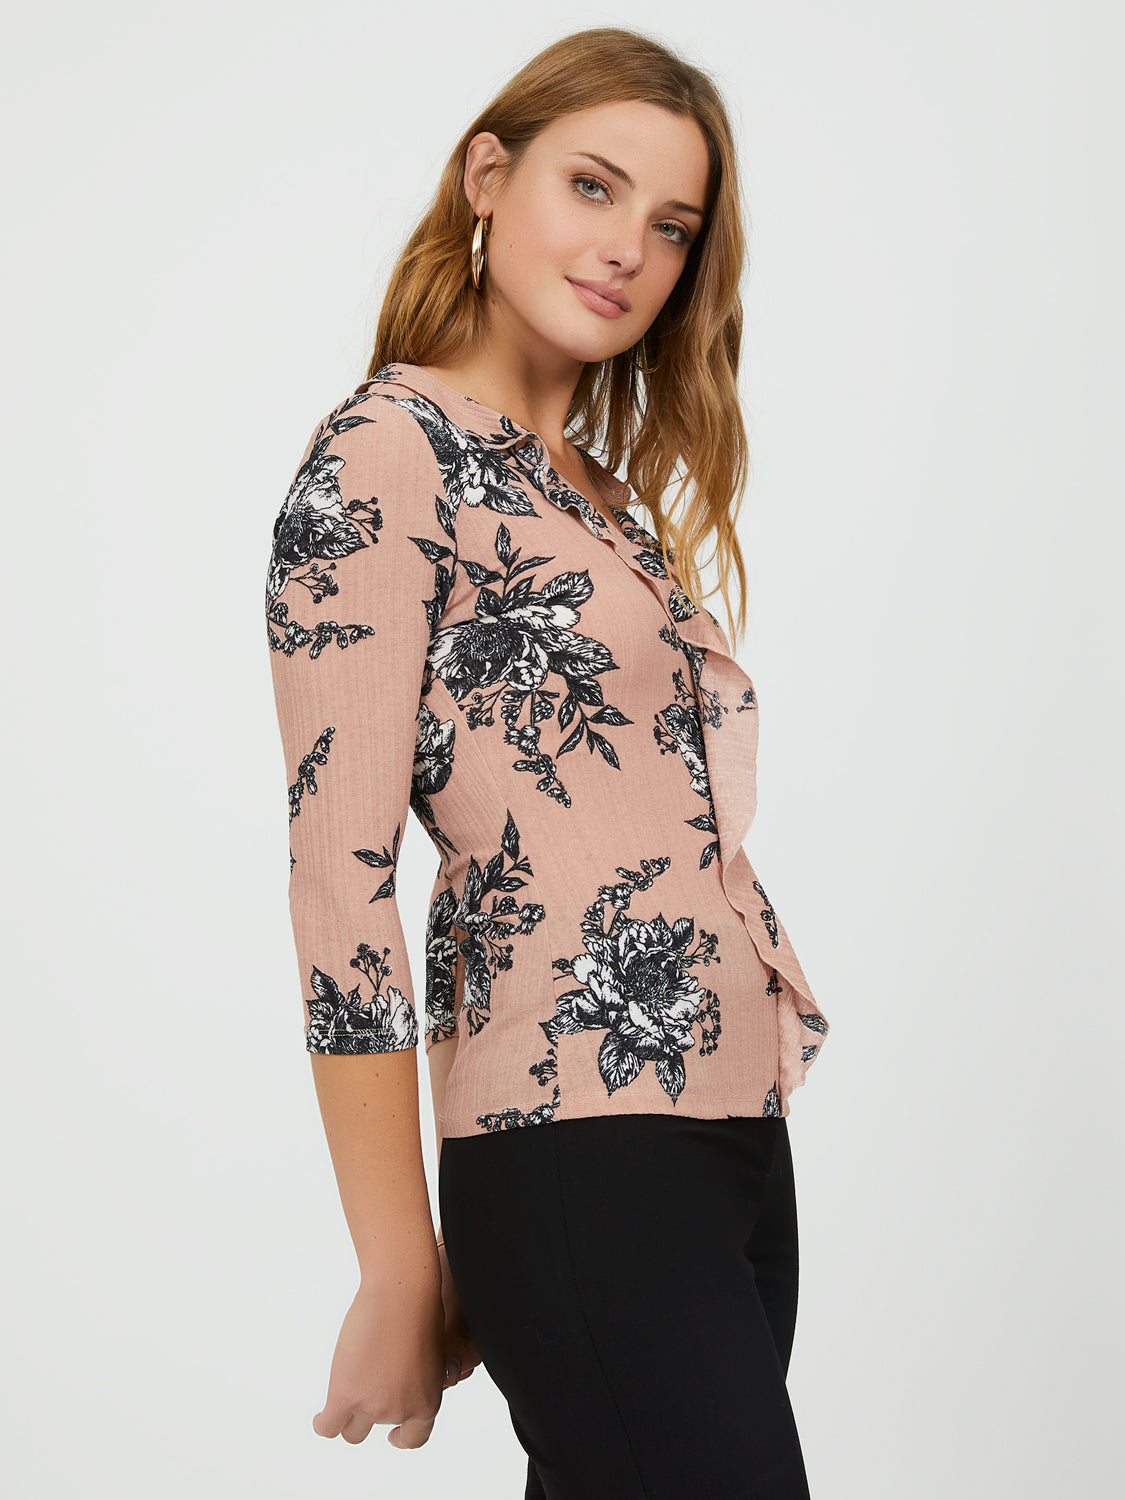 Floral Variegated Rib Knit Ruffle Top